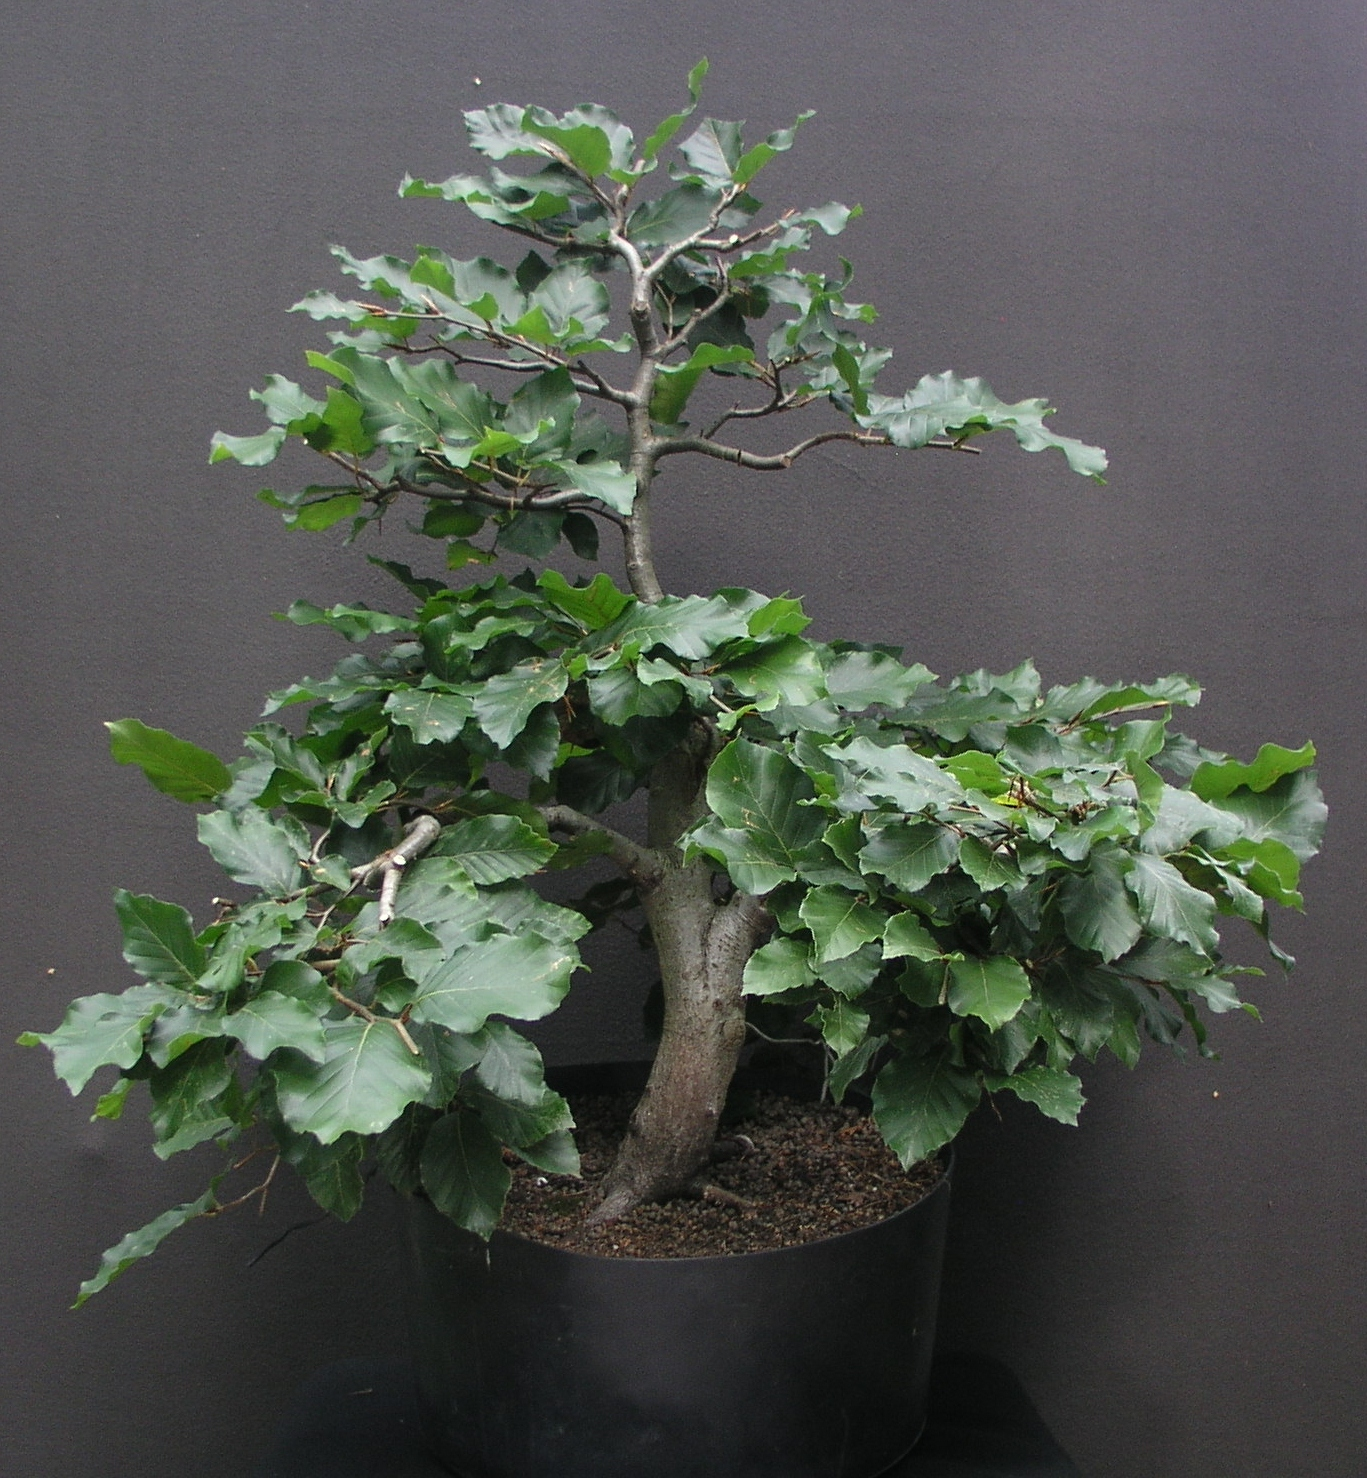 rene pauly bonsai rotbuche 3 fagus sylvatica. Black Bedroom Furniture Sets. Home Design Ideas